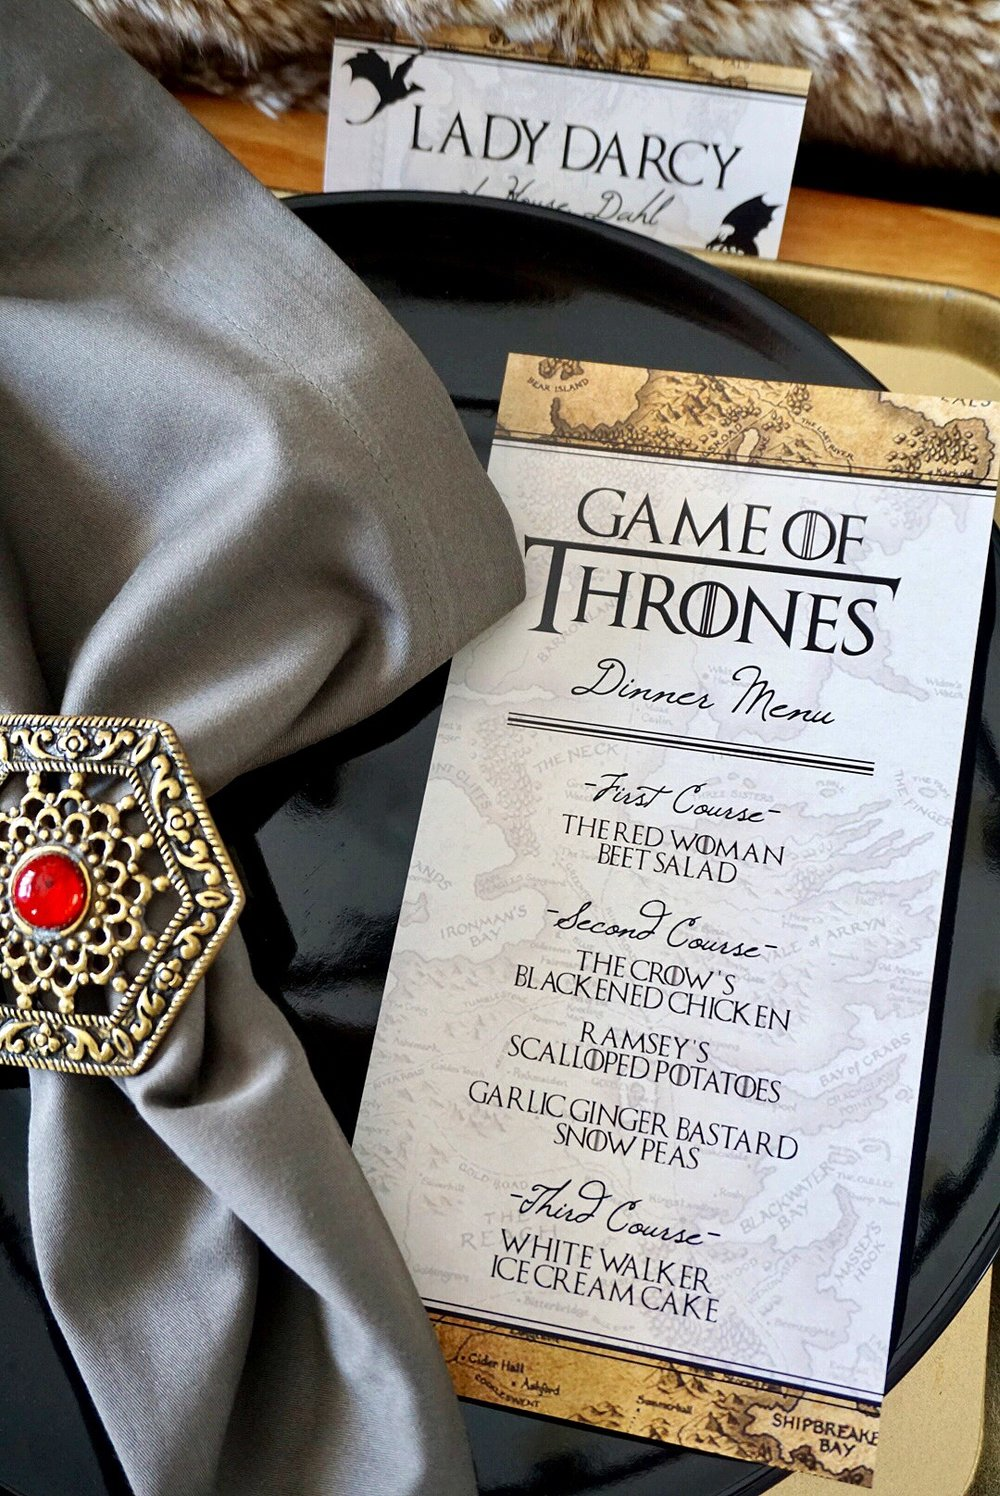 Gold napkin ring with red jewel, grey linen napkin, and Game of Thrones themed dinner menu.